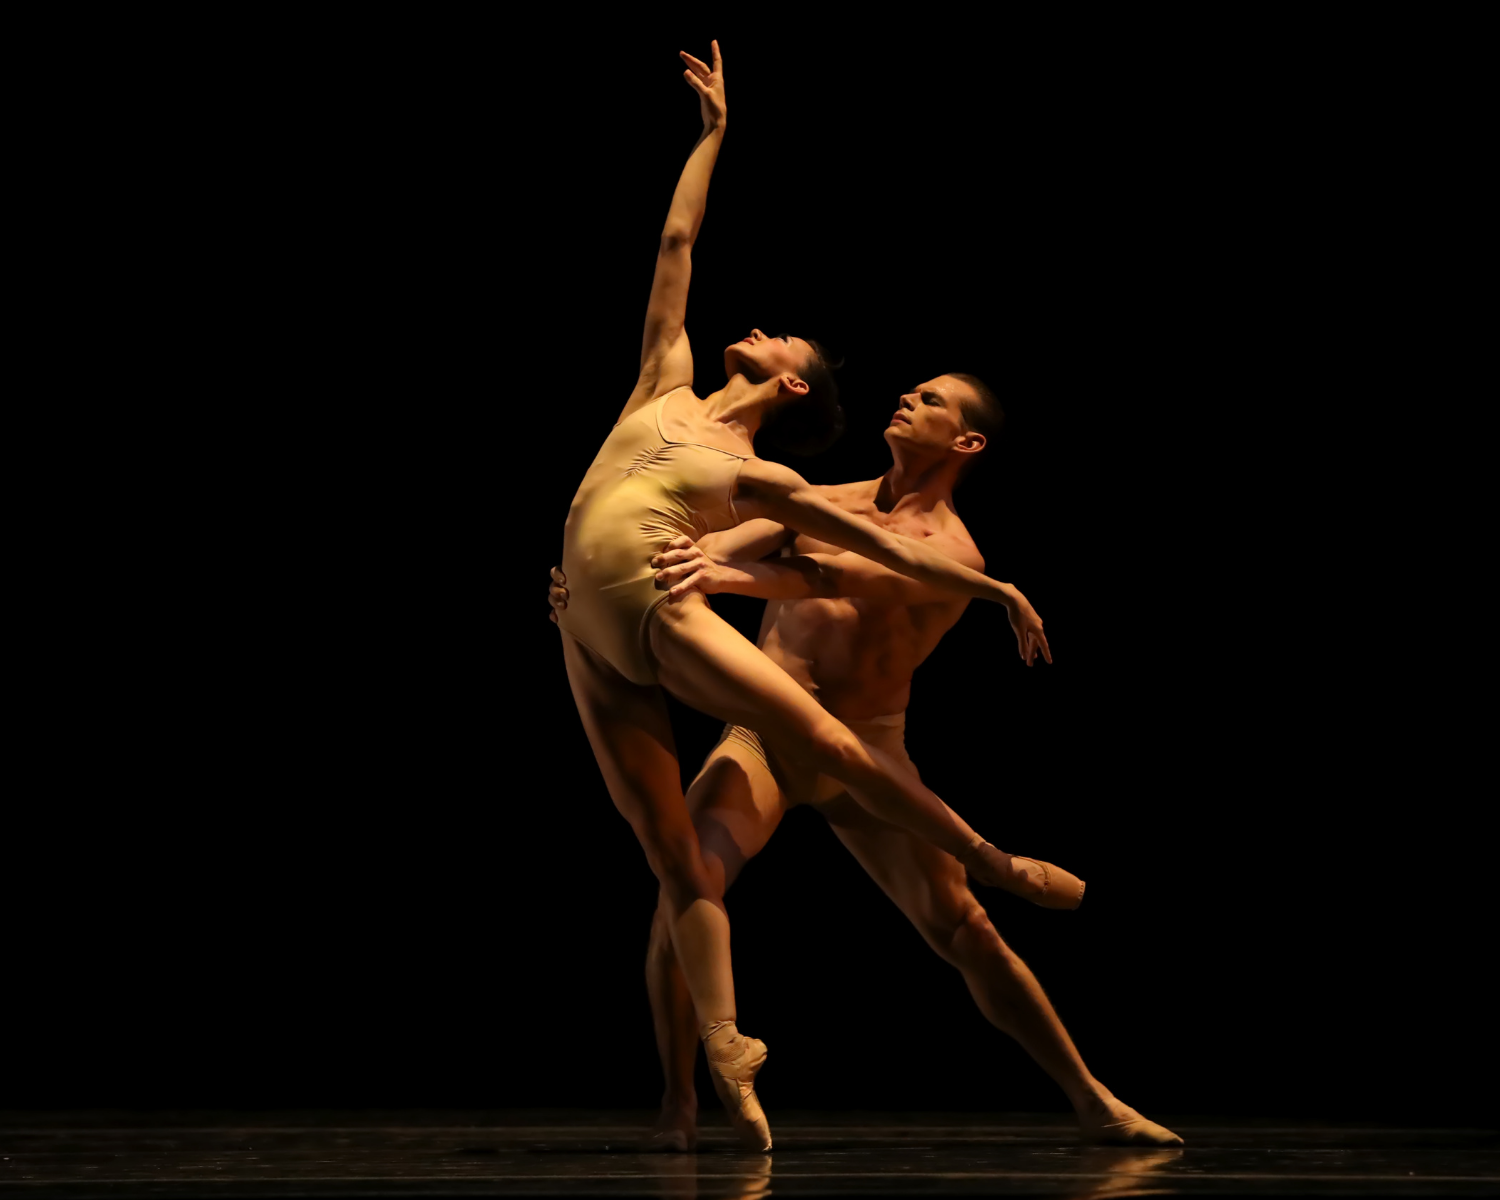 Male dancer in nude-colored shorts partnering with female dancer in nude-colored leotard, posed under a spotlight.